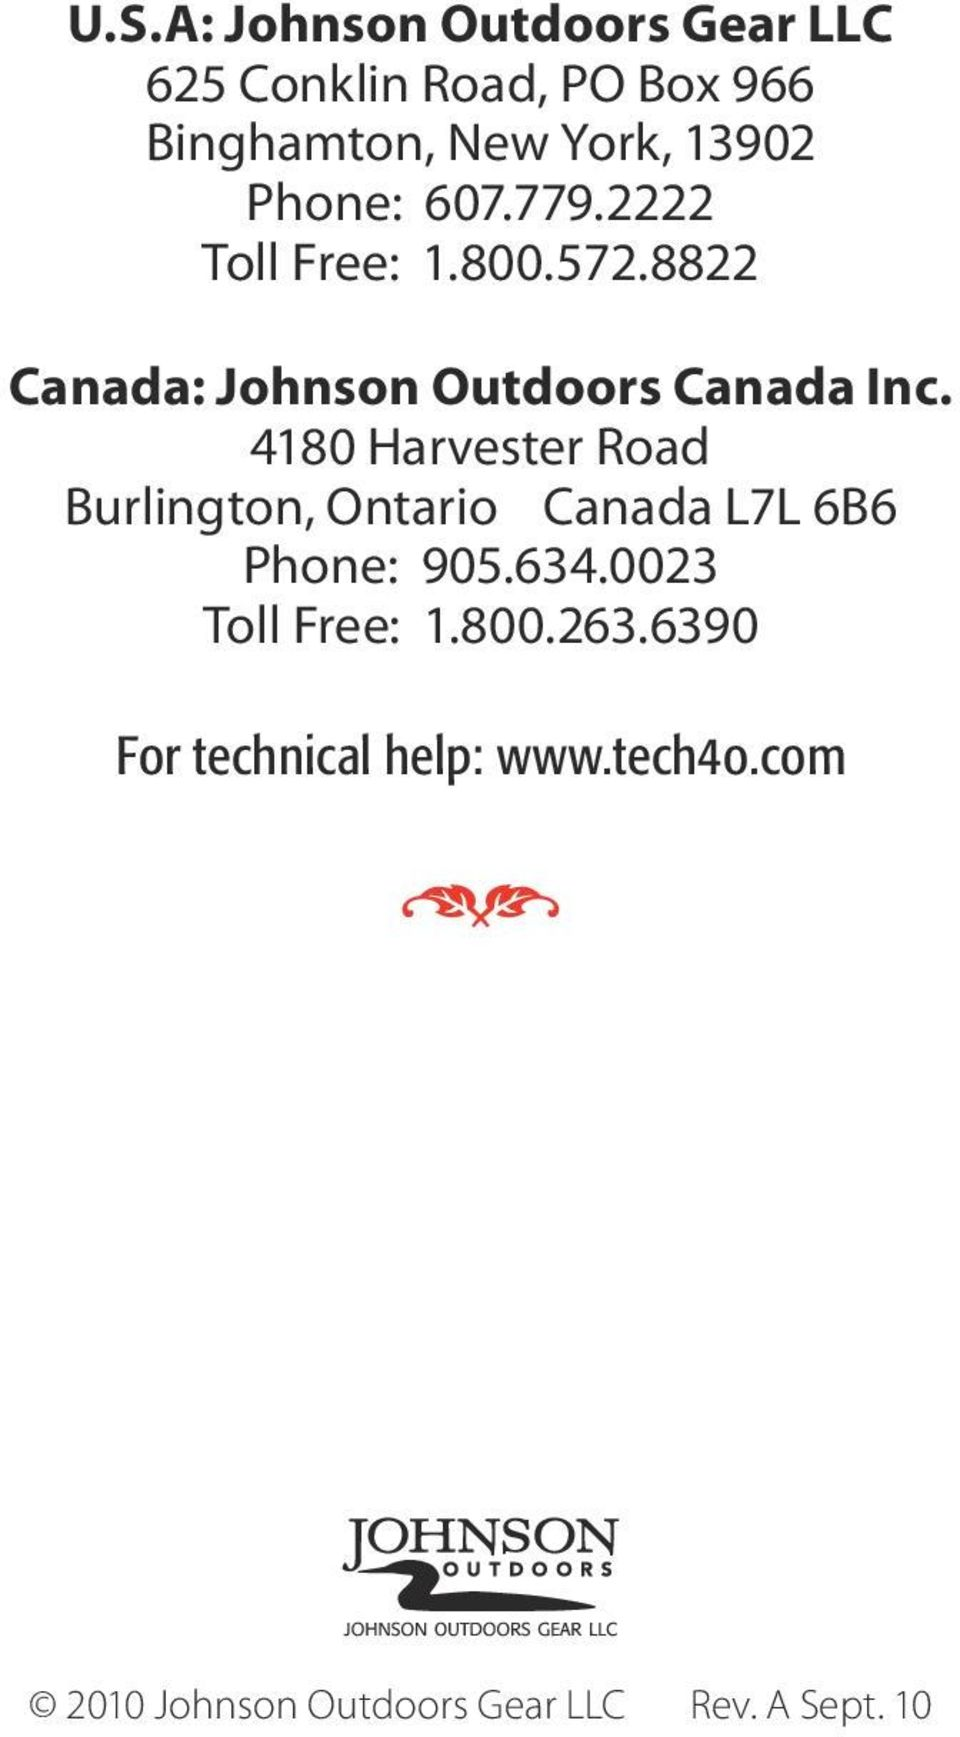 4180 Harvester Road Burlington, Ontario Canada L7L 6B6 Phone: 905.634.0023 Toll Free: 1.